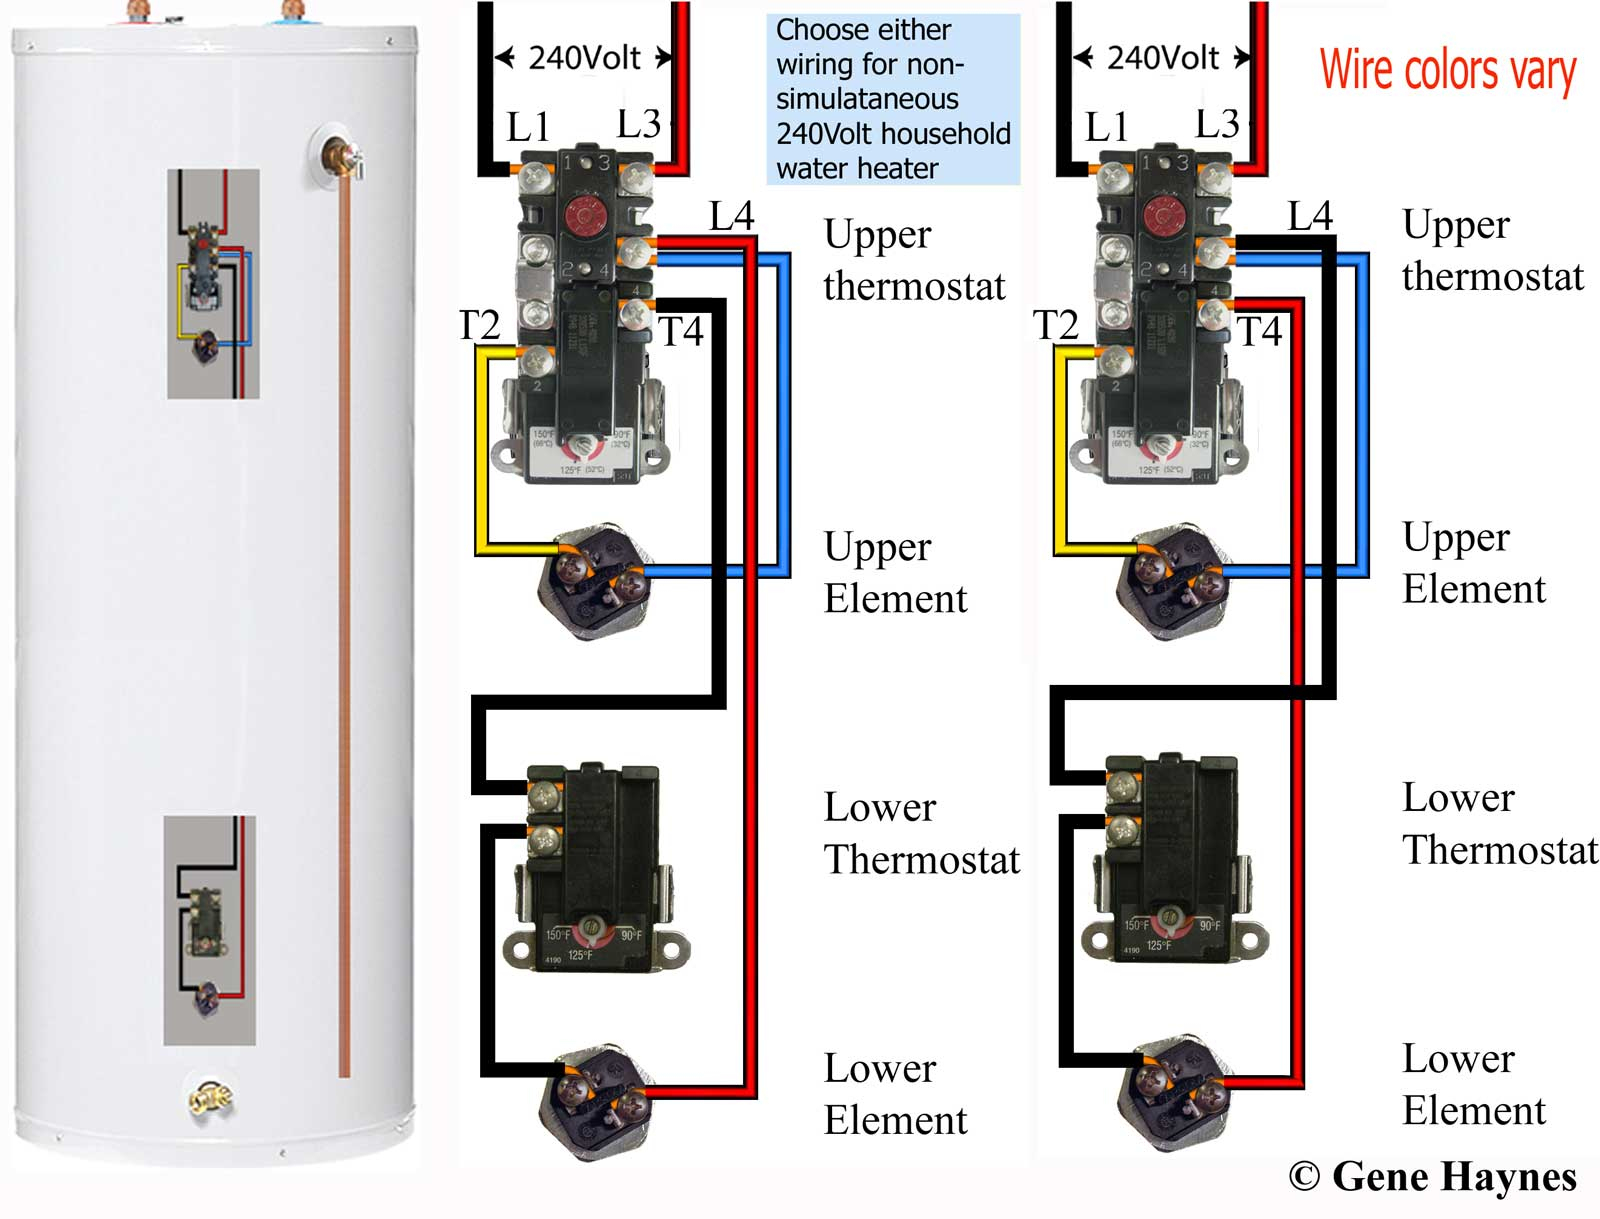 How To Wire Water Heater Thermostats - Water Heater Wiring Diagram Dual Element